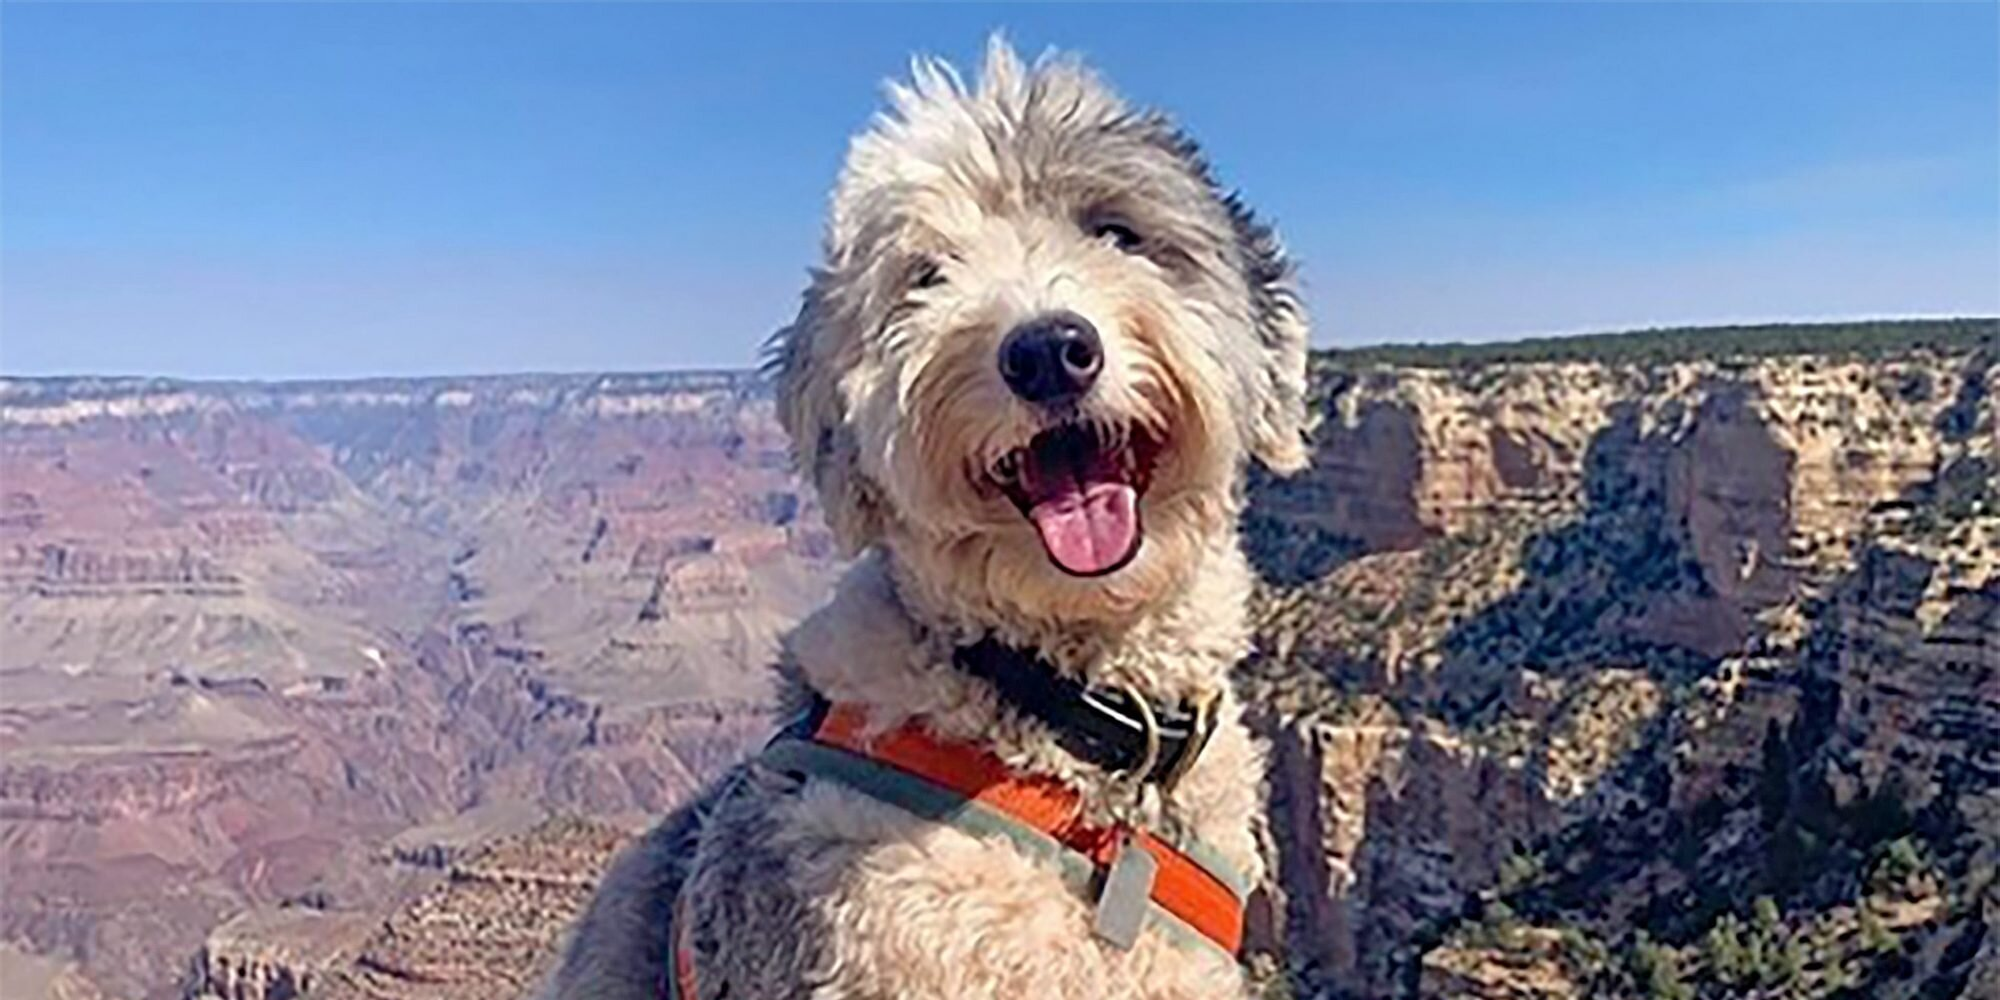 20 Top Dog-Friendly Vacation Destinations for You and Your Best Travel Buddy